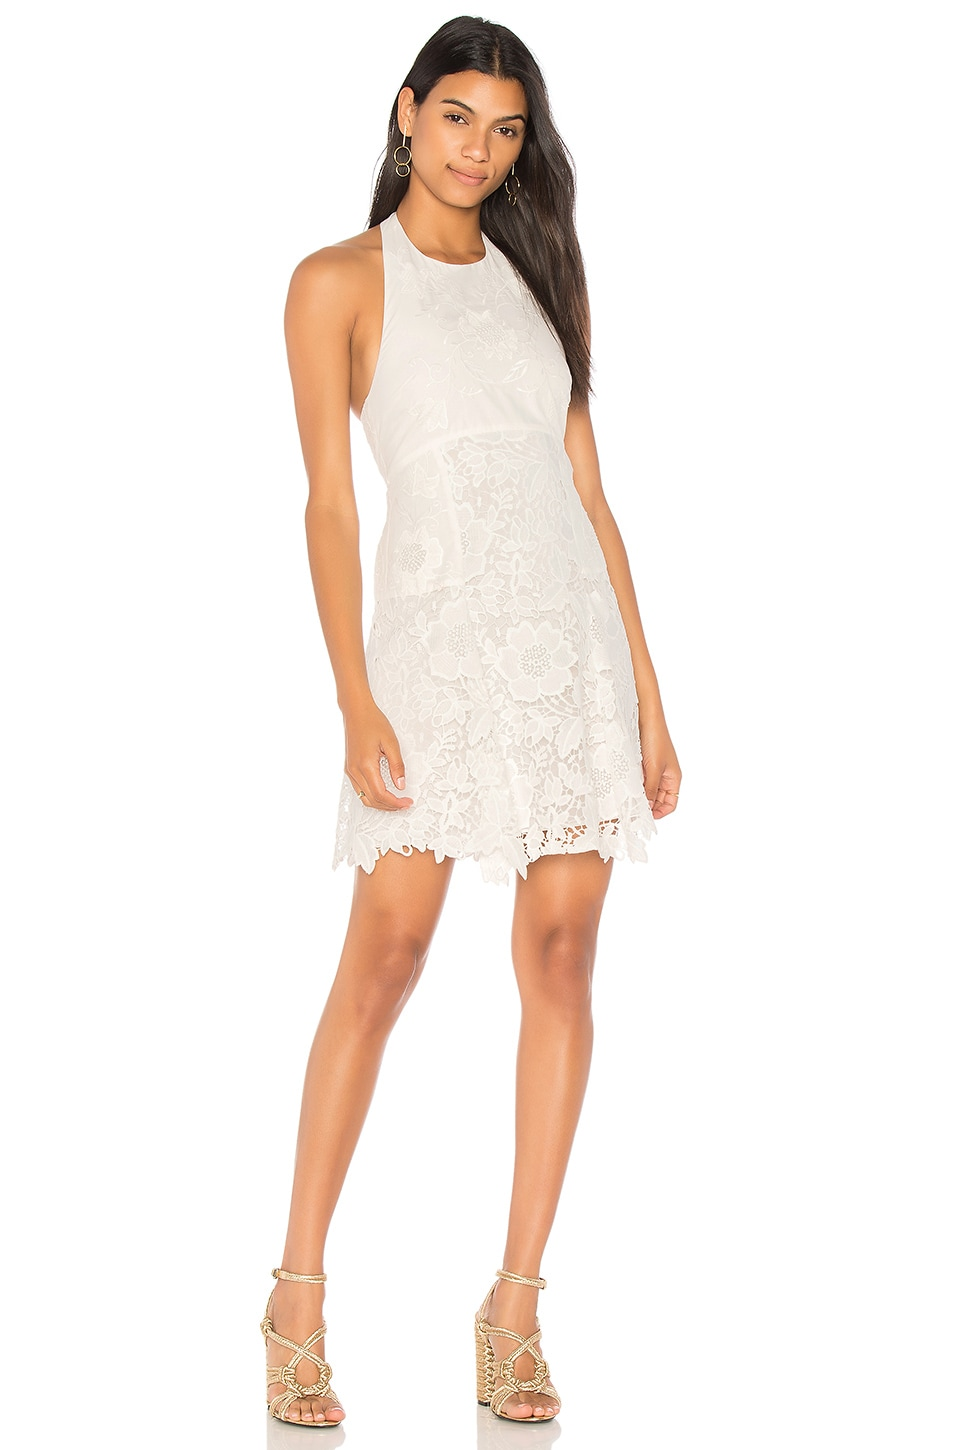 Alice   Olivia Susan Dress in Off White | REVOLVE